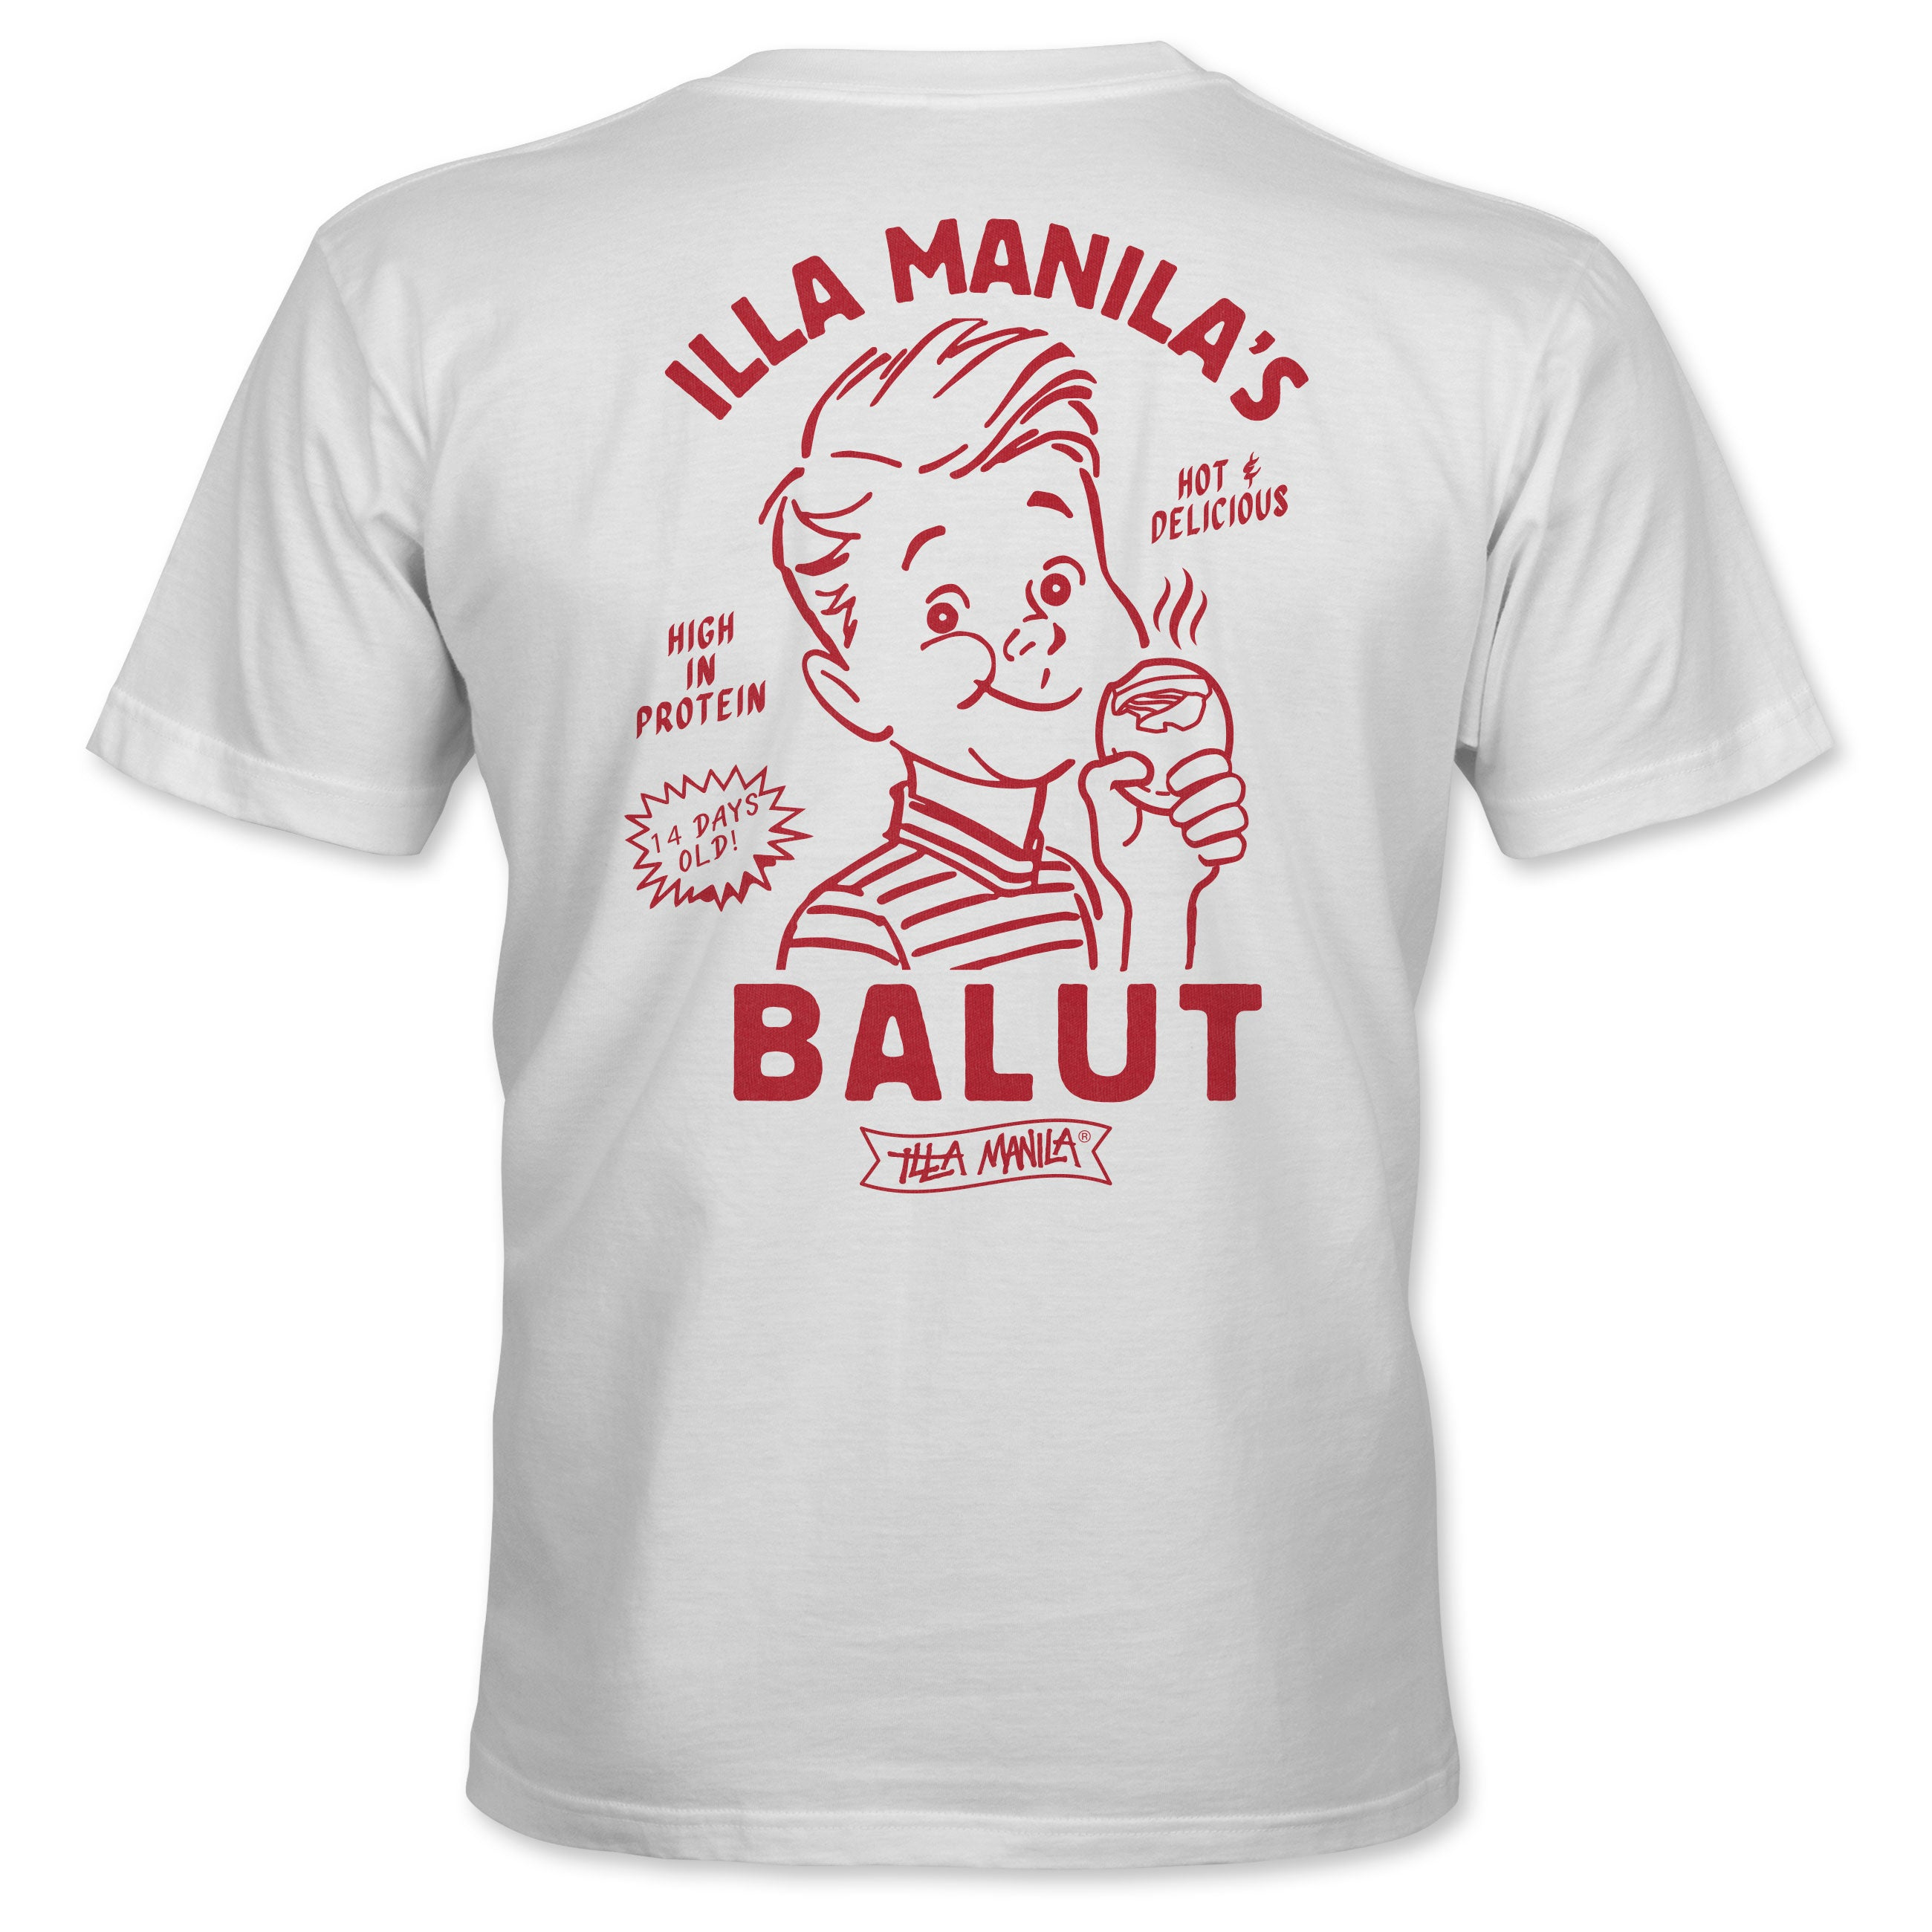 Balut T-shirt - White